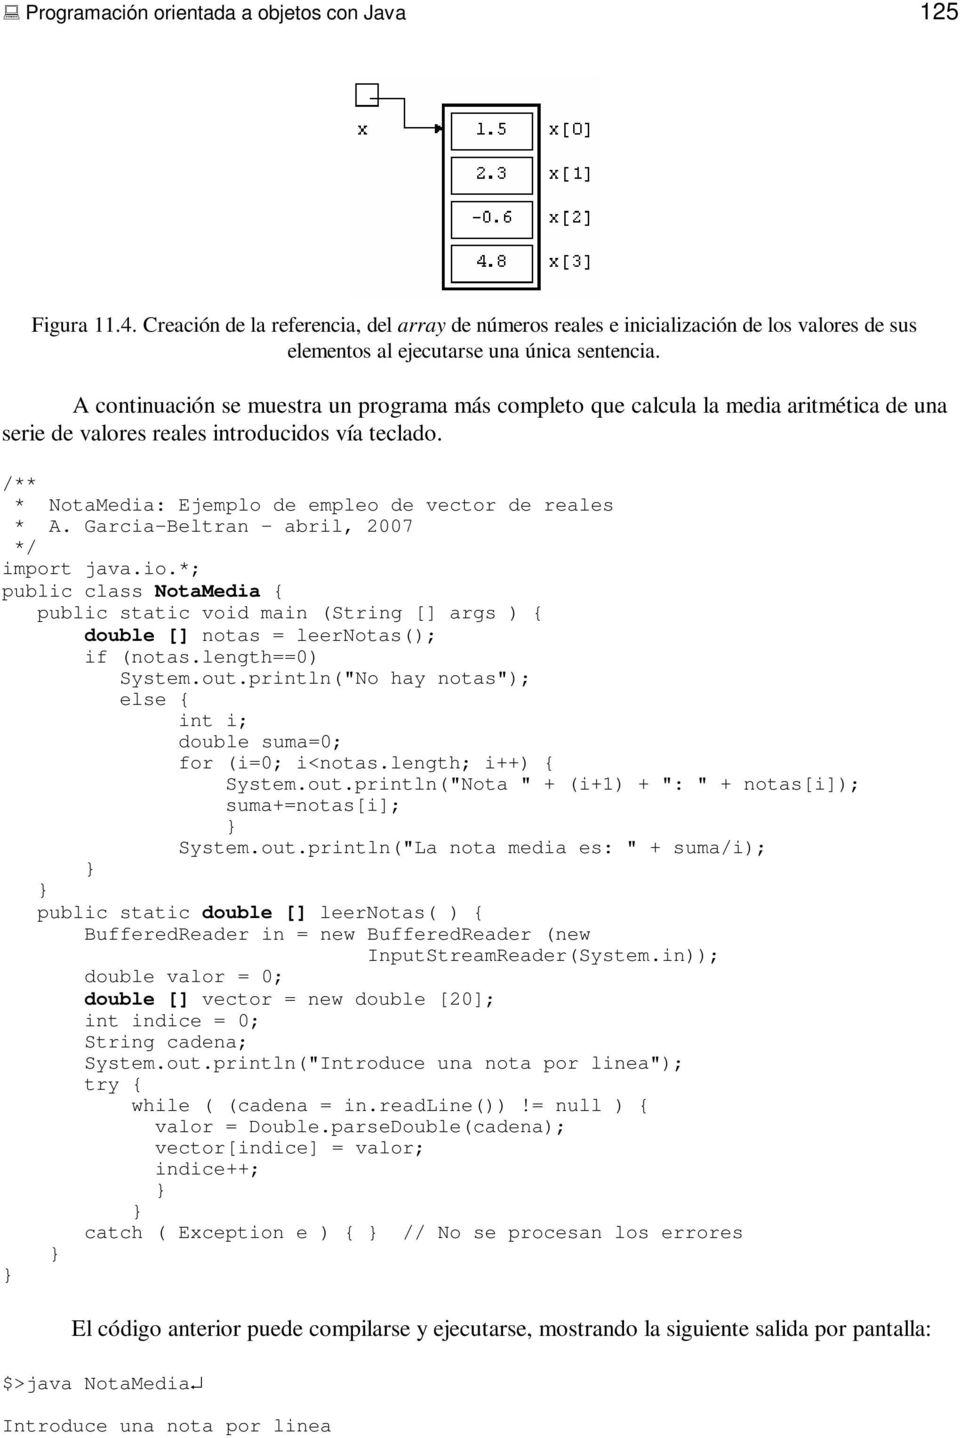 Garcia-Beltran - abril, 2007 import java.io.*; public class NotaMedia { public static void main (String [] args ) { double [] notas = leernotas(); if (notas.length==0) System.out.